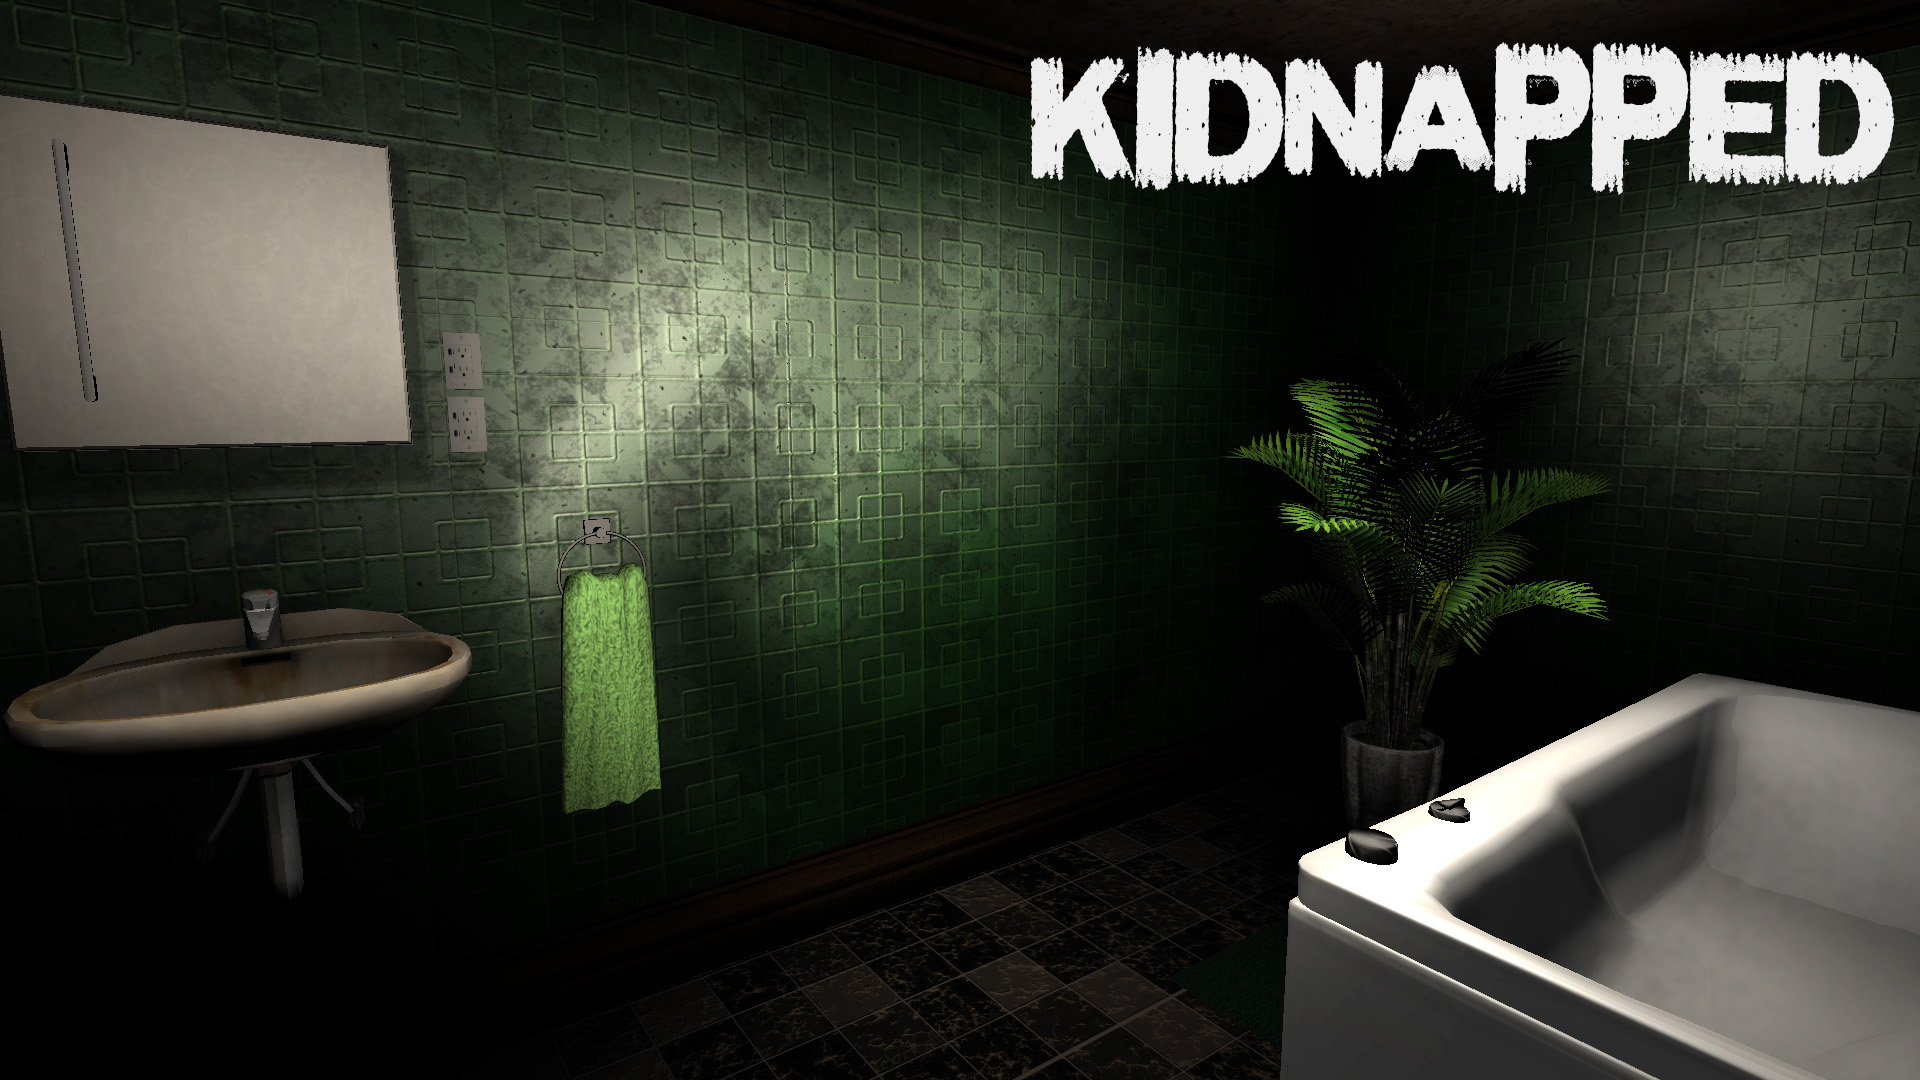 Kidnapped screenshot